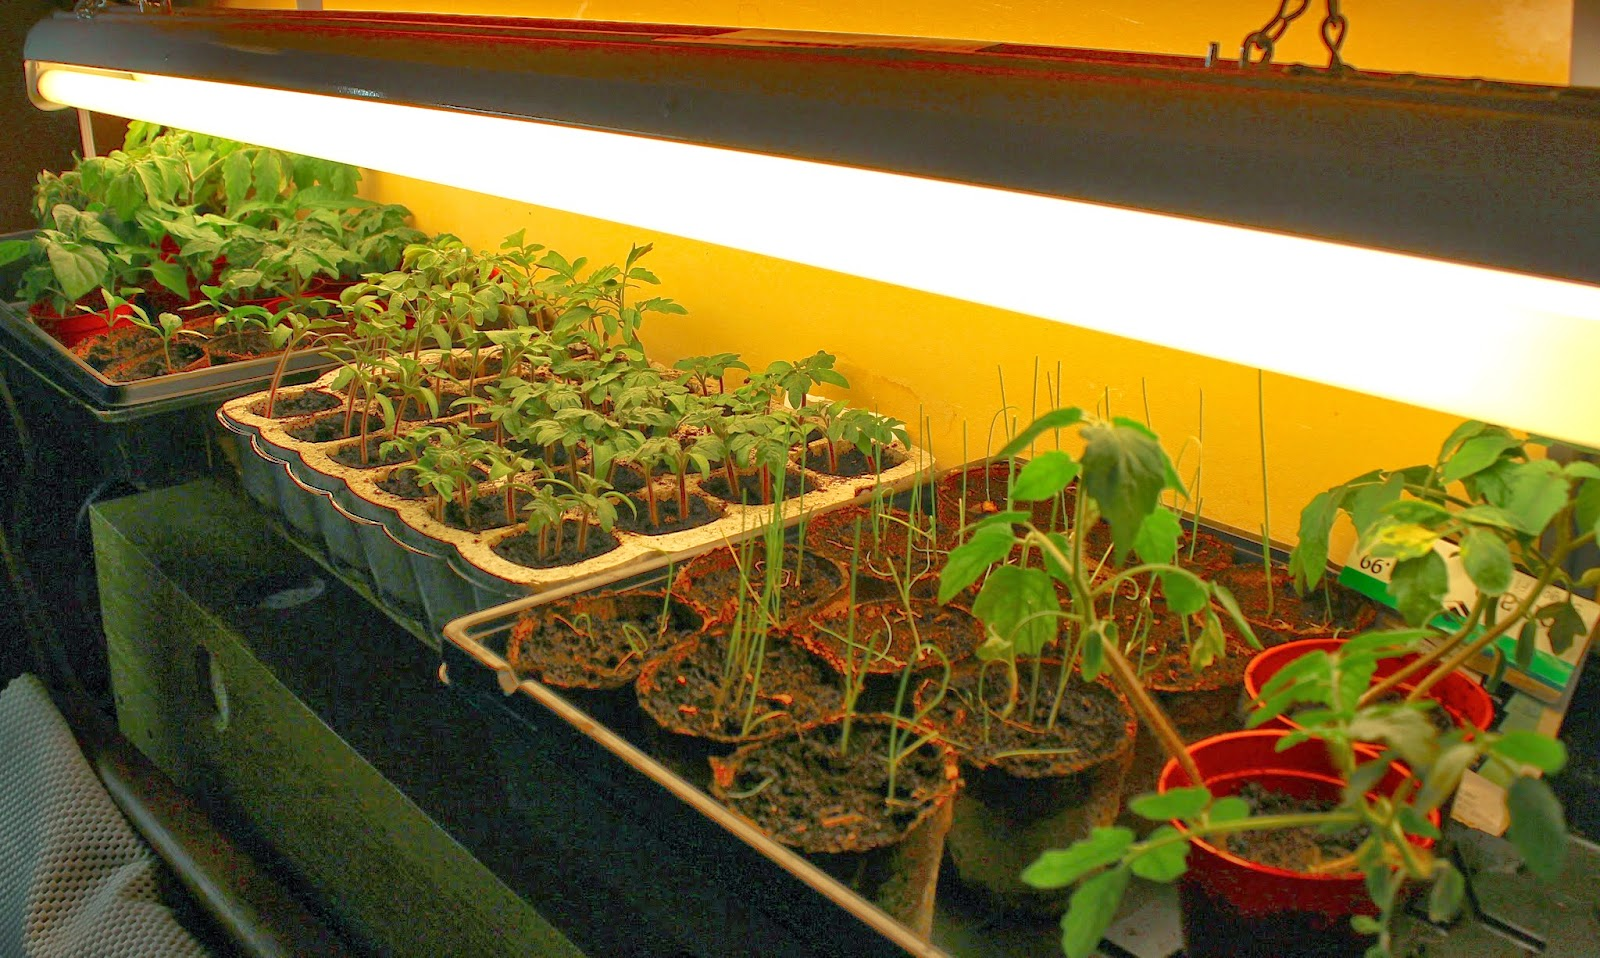 seedlings under grow lights